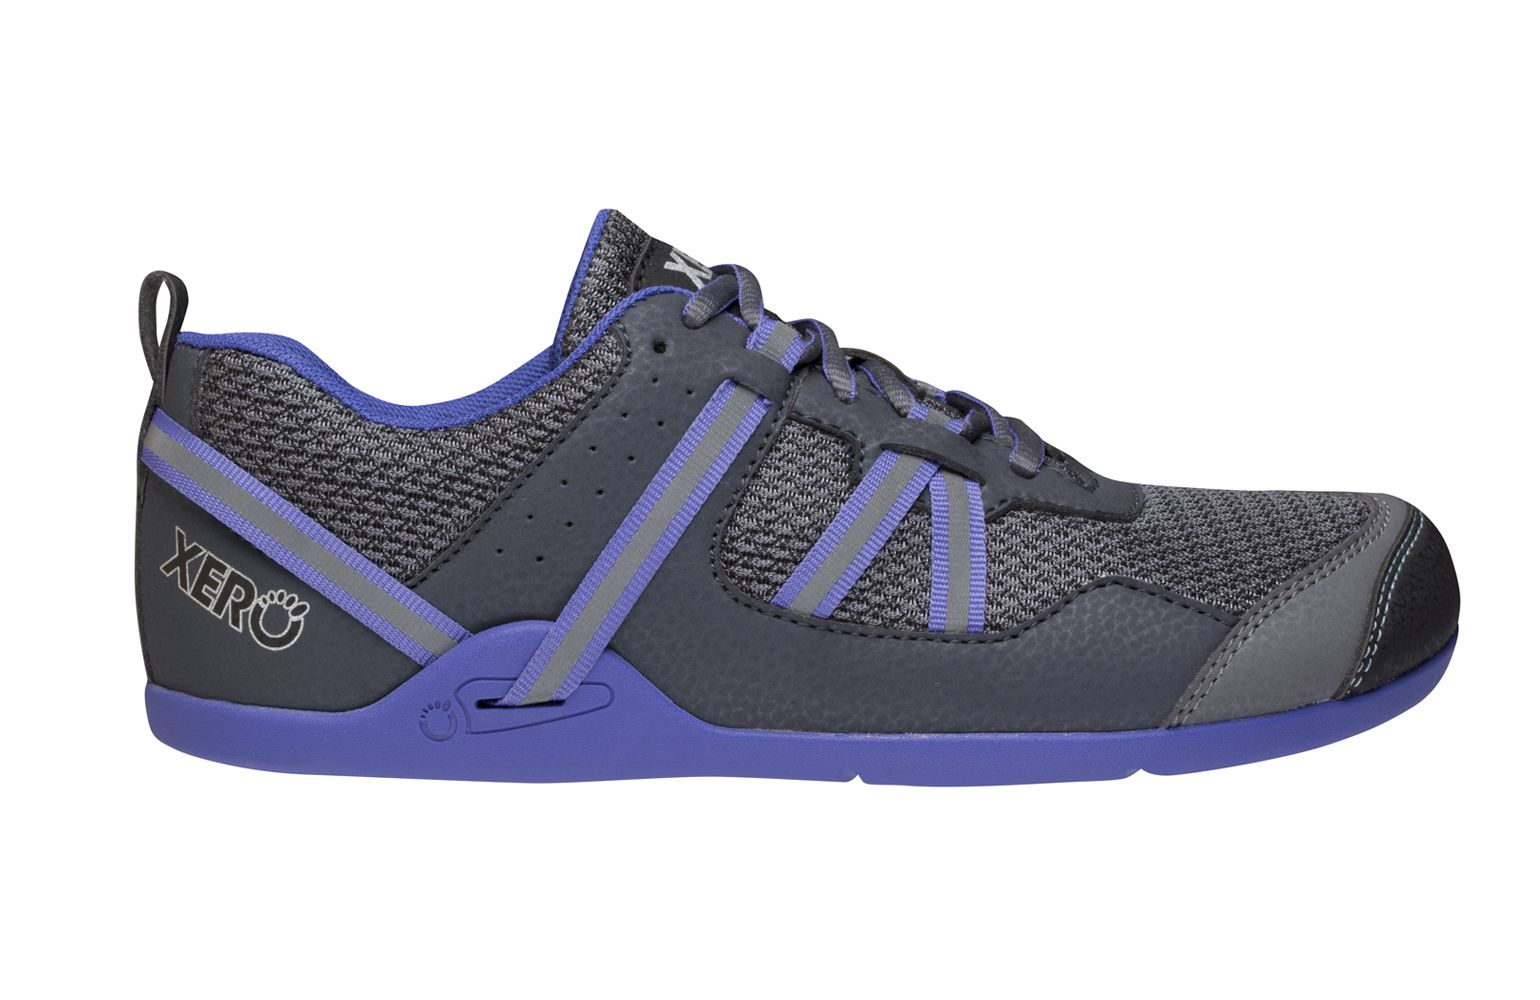 I Think You Ll Love These Xero Shoes Check Em Out Prio Running And Fitness Shoe Women Minimalist Shoes Sneakers Shoes